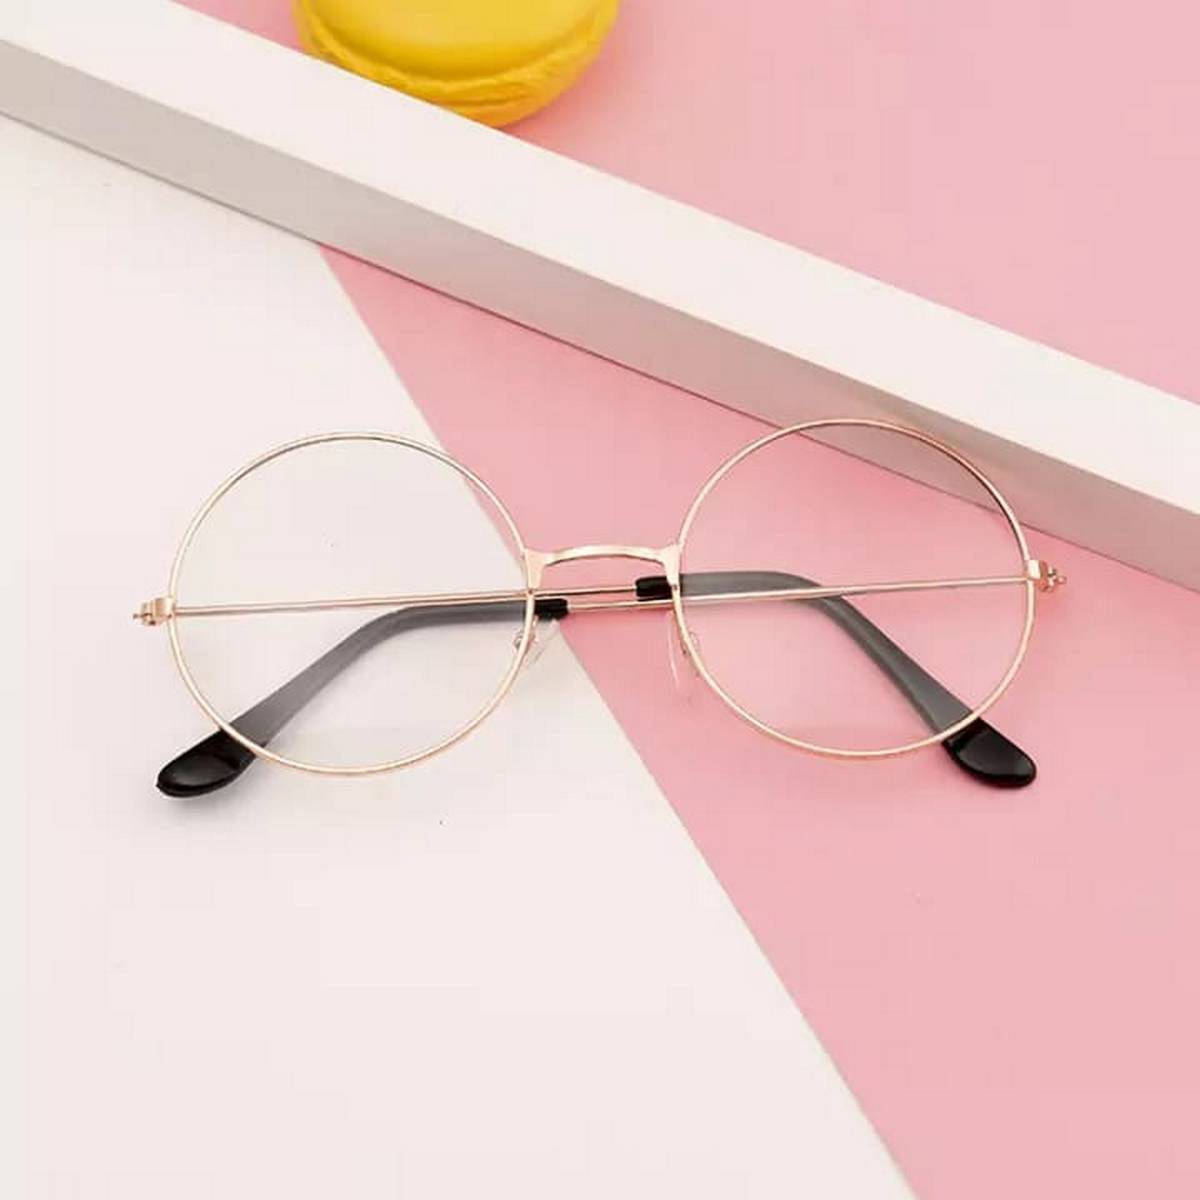 Golden Metal Frame Round Harry Potter Glasses for Girls - Classical Retro Style High Quality Glasses